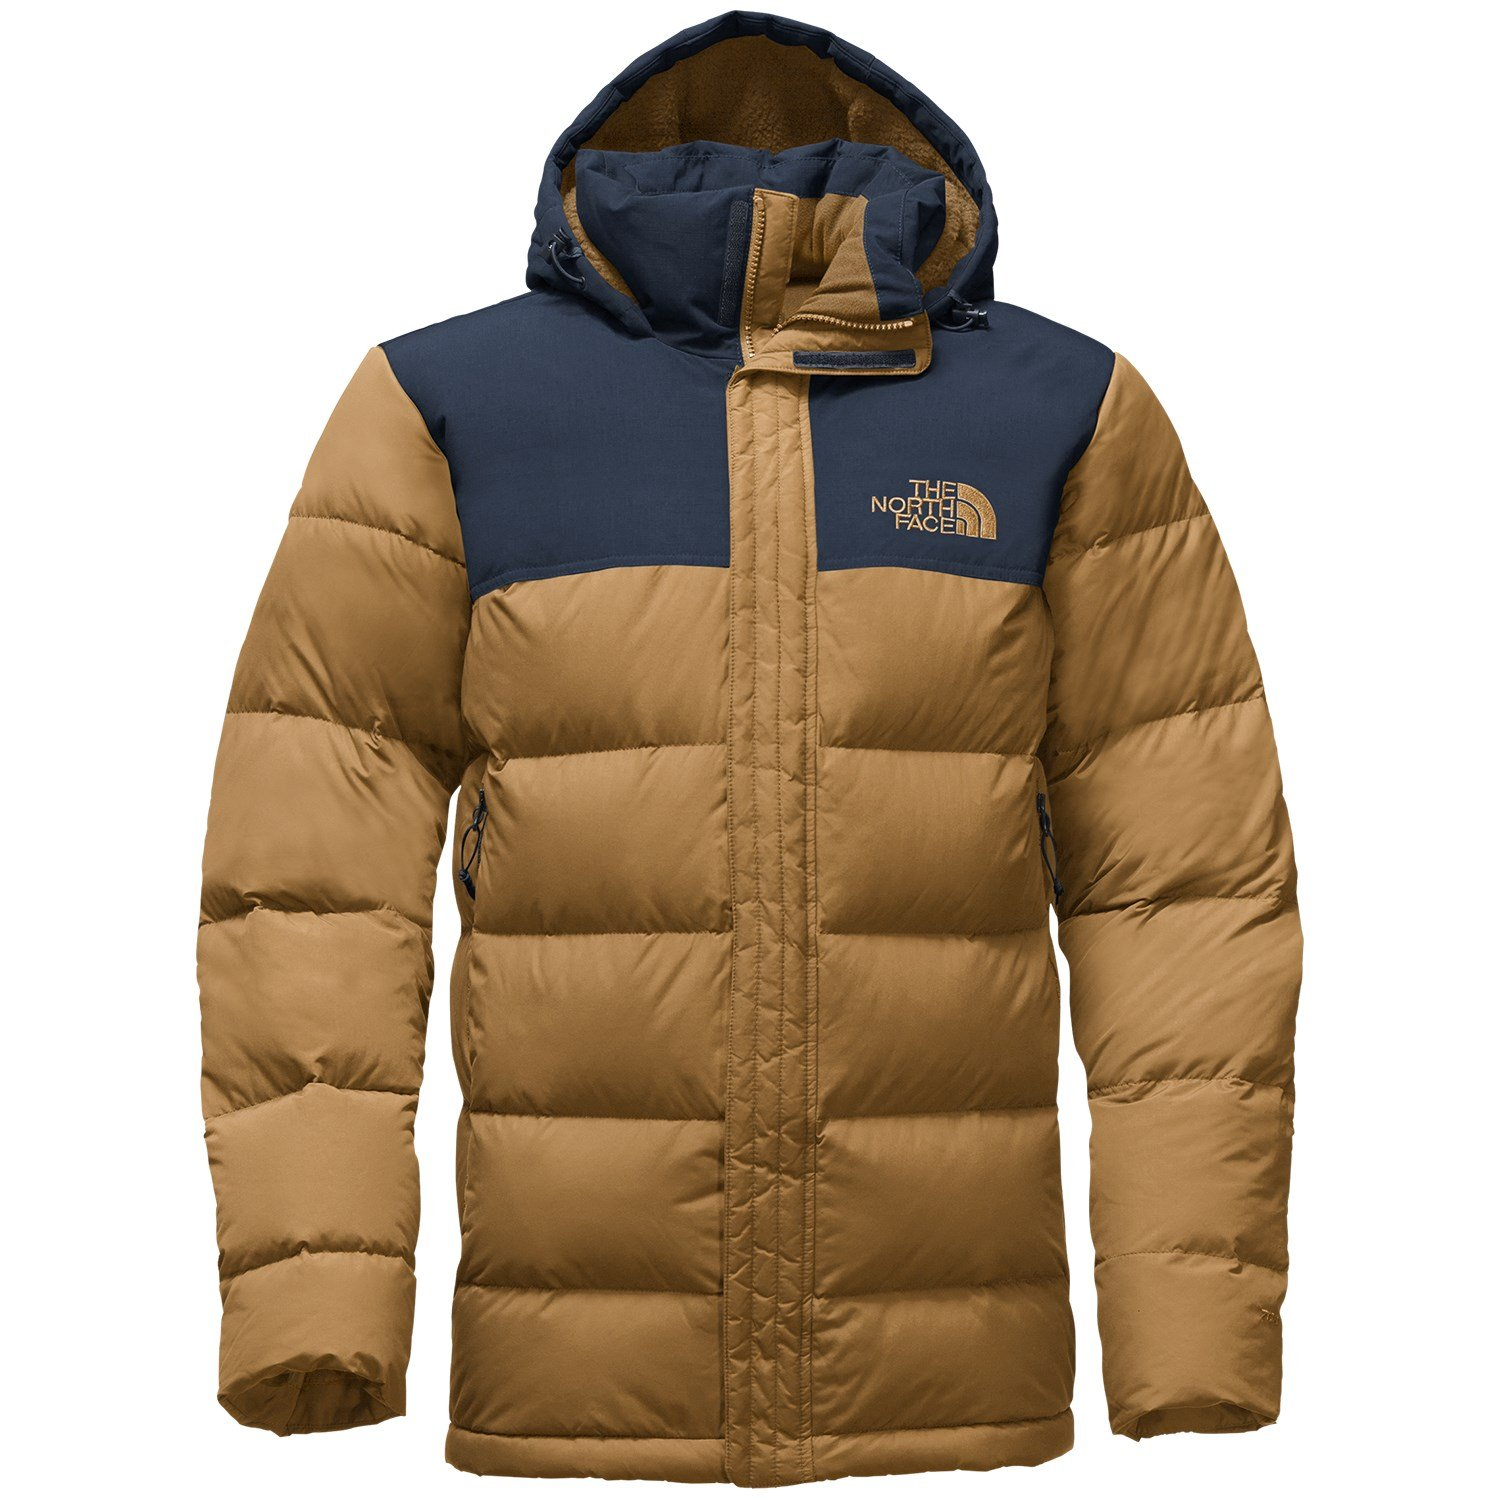 587a50c18 sale new the north face mens nuptse jacket c7cee a8220